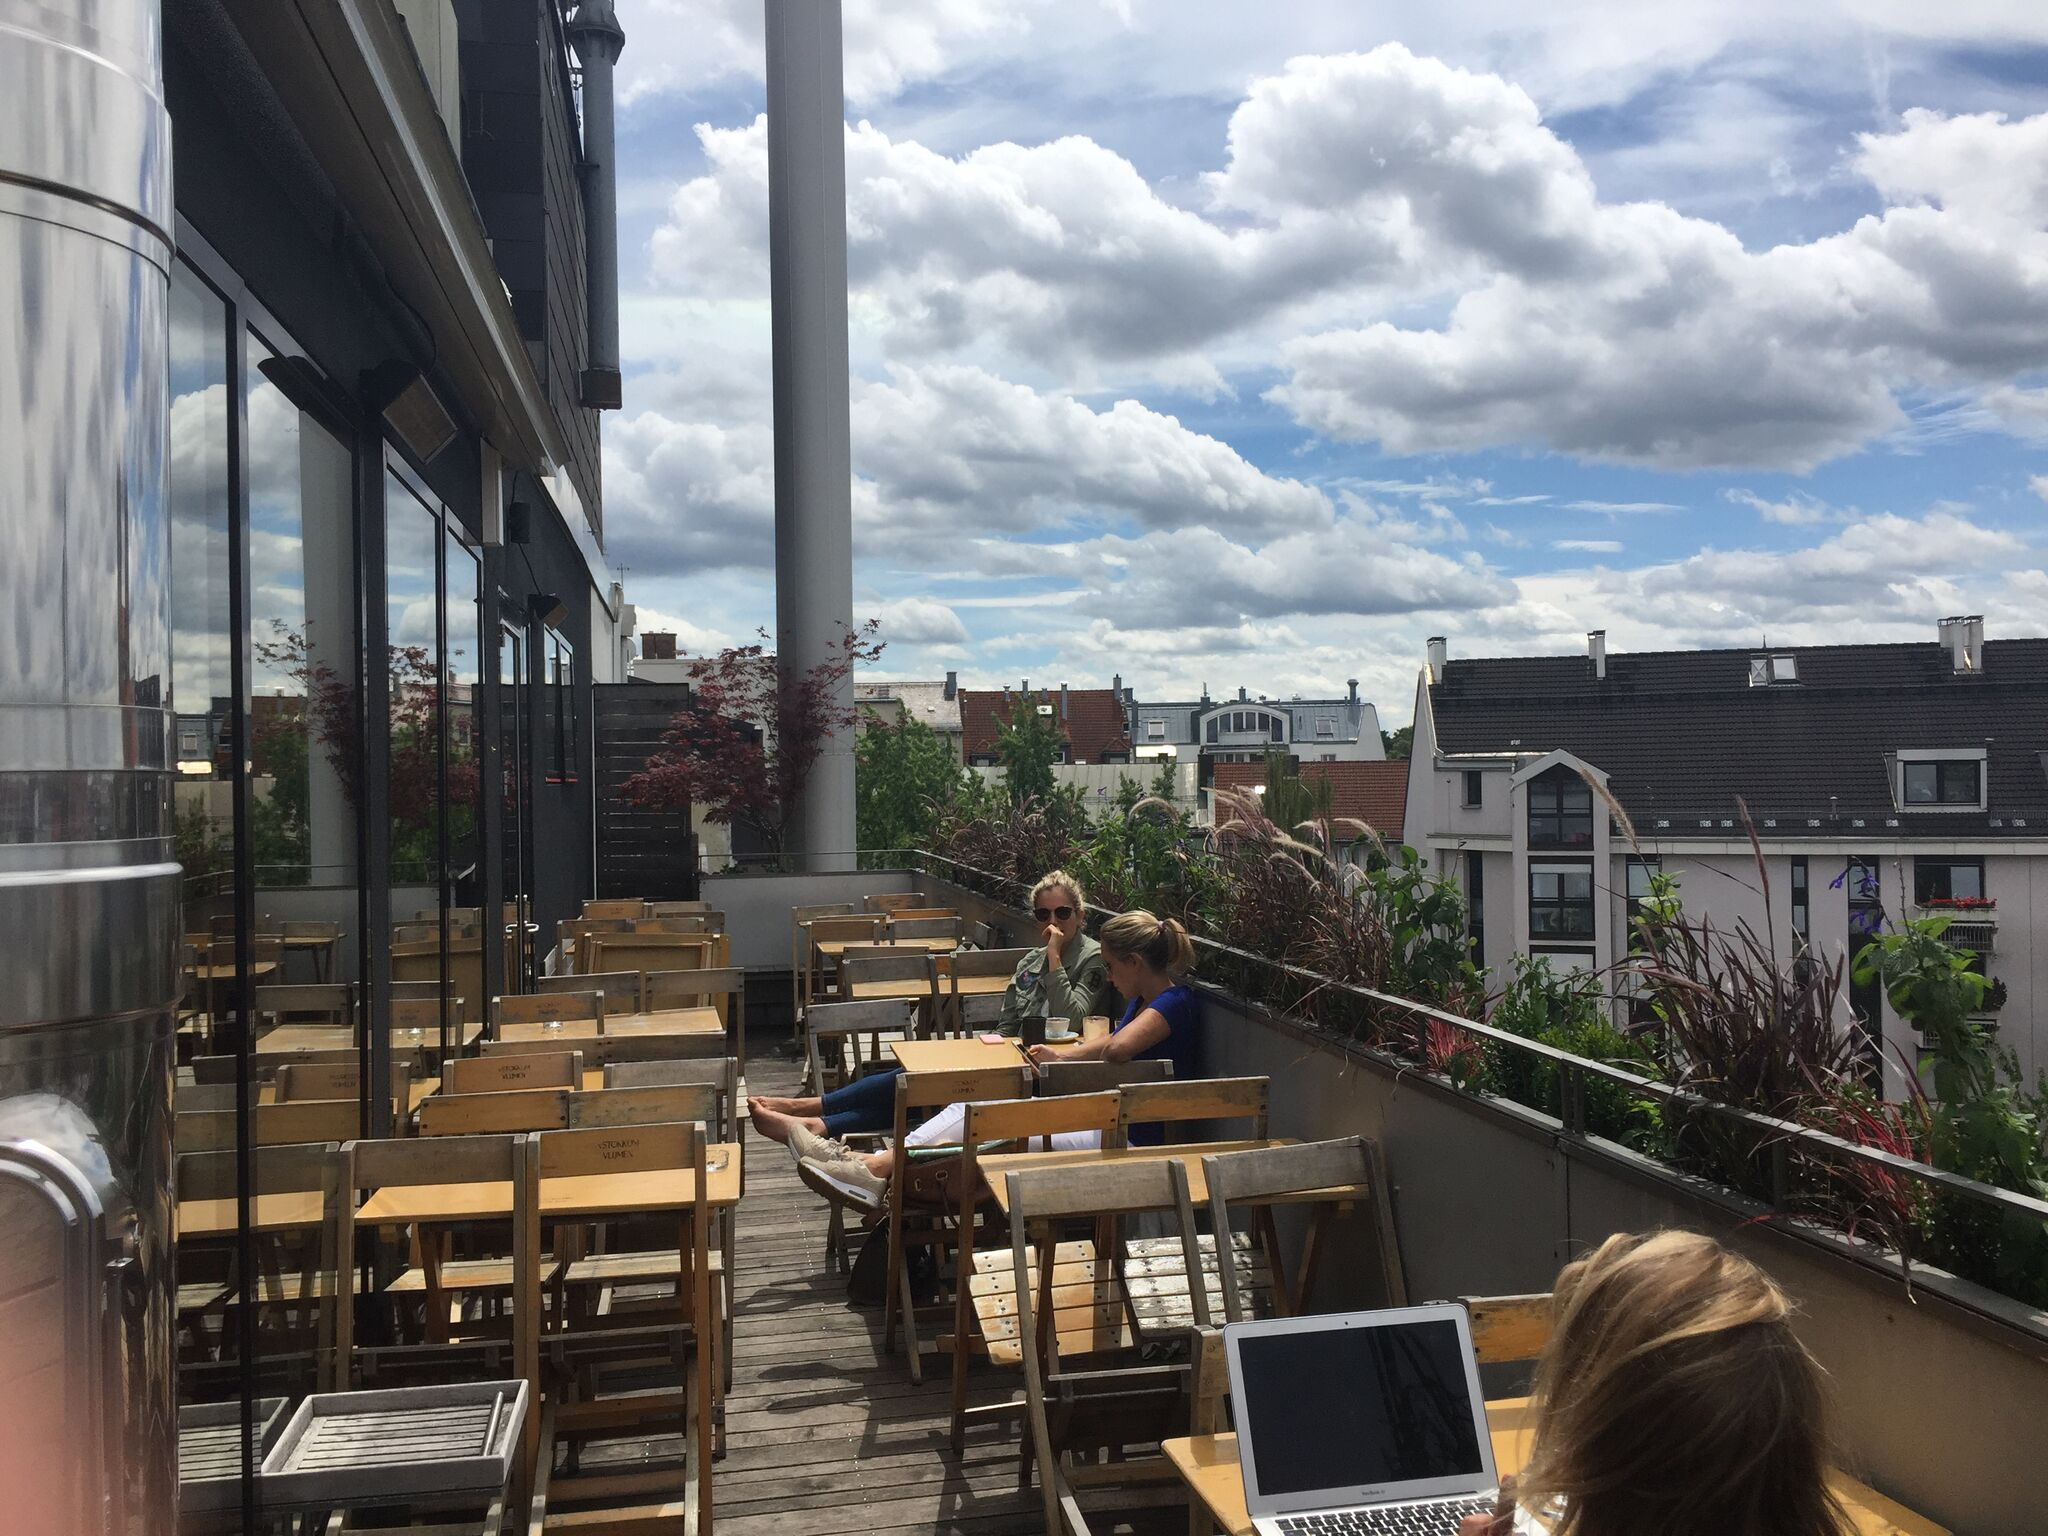 IMG 1590 1024x768 - Best Outdoor Bars and Rooftops for a Drink in Munich